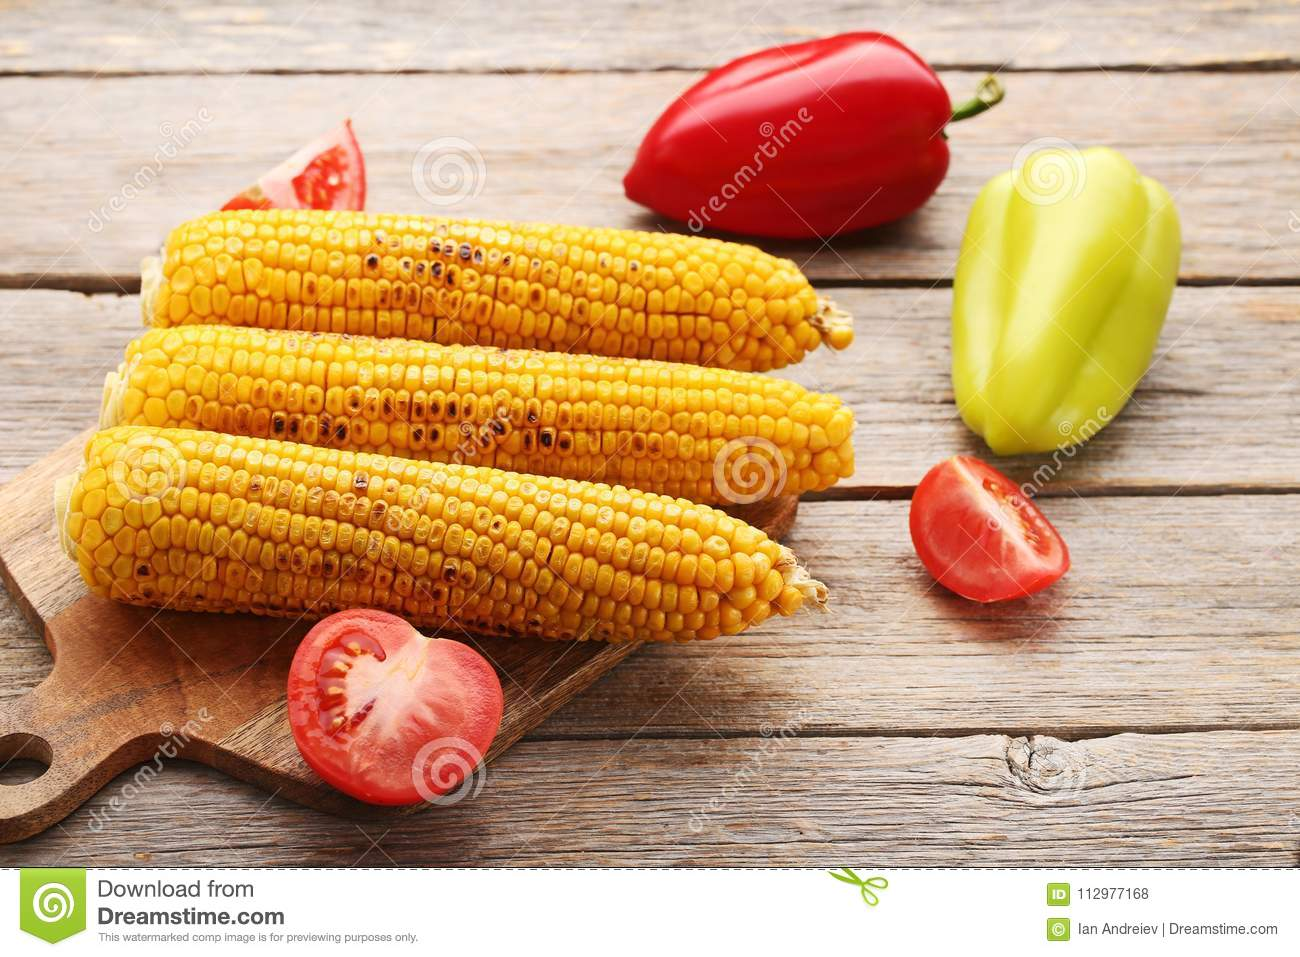 Tasty grilled corns